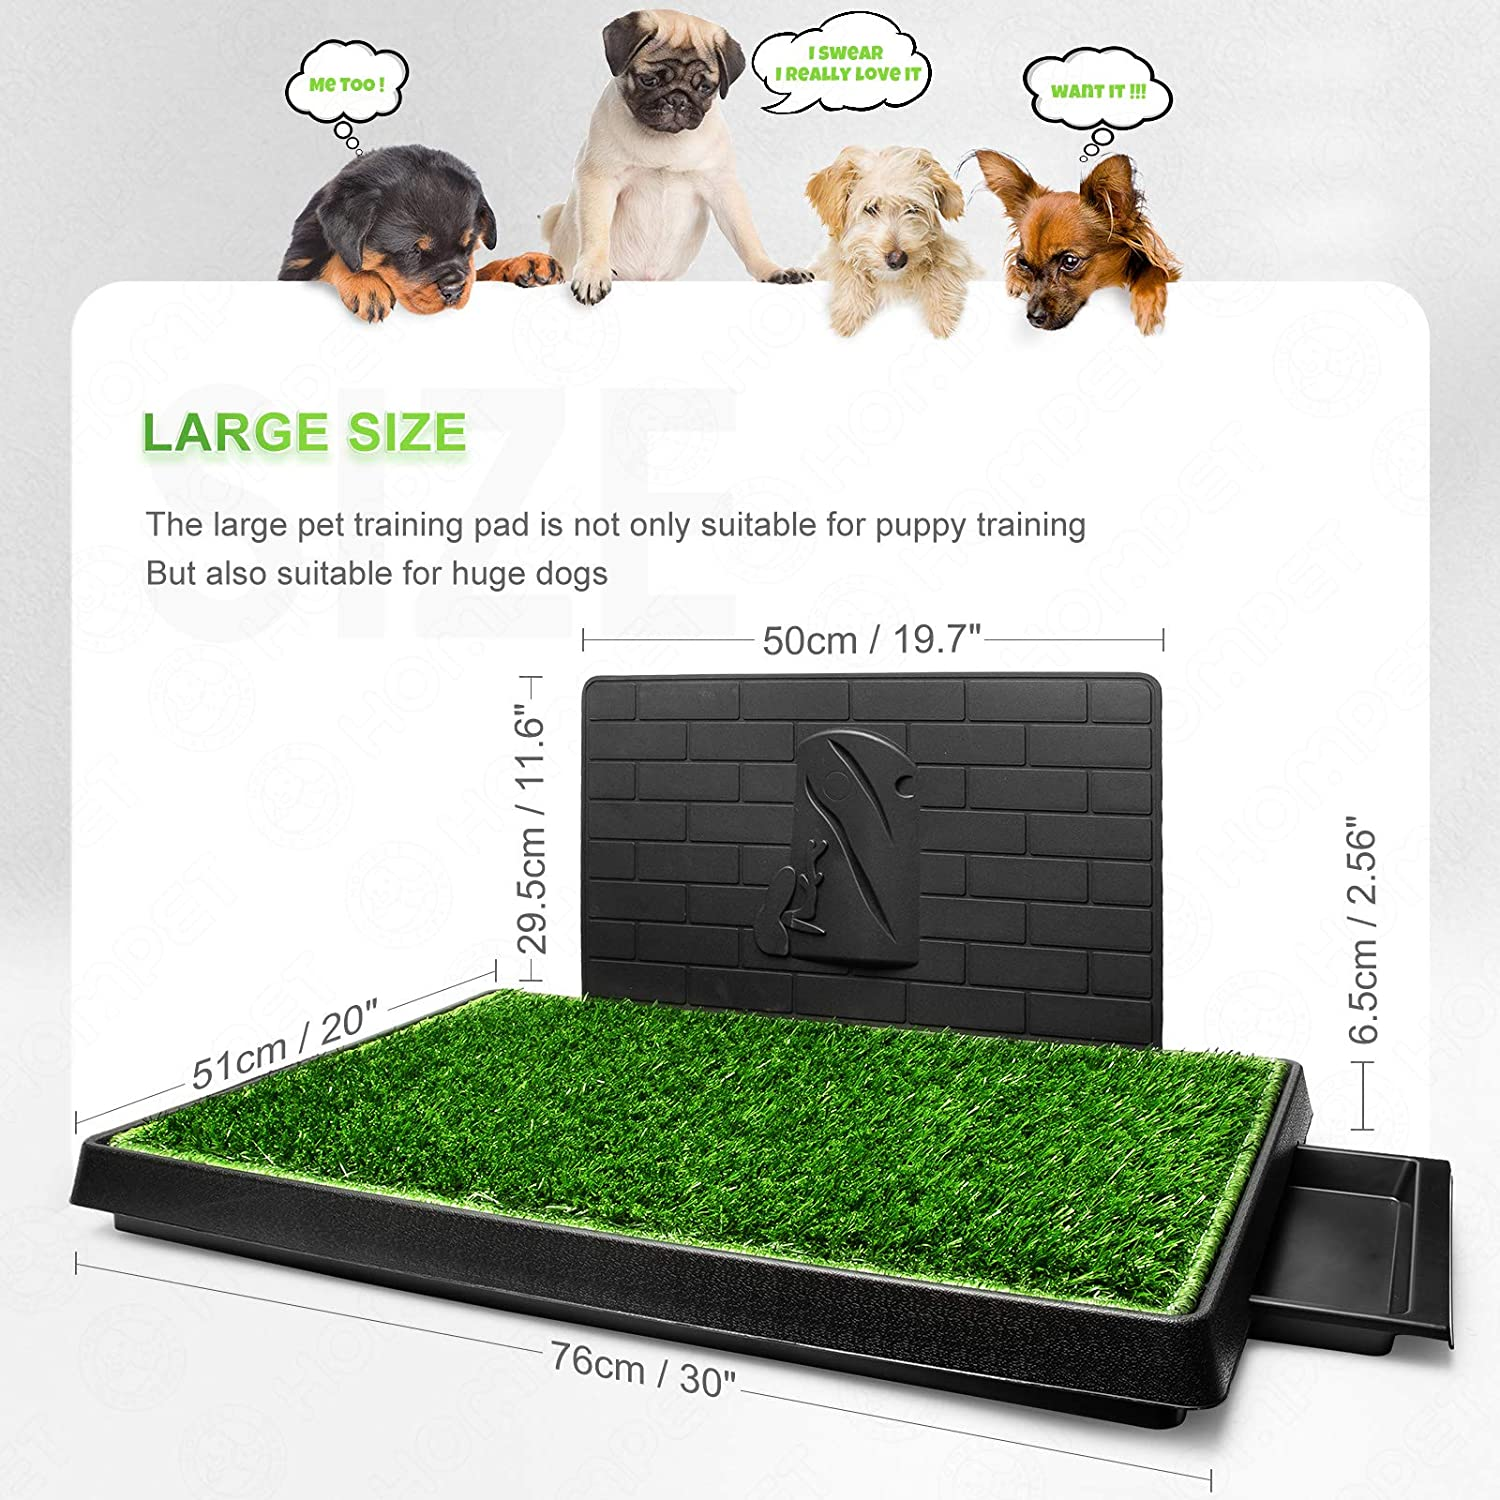 Hompet Dog Grass Pad with Tray Large, Puppy Turf Potty Training Pads with Pee Baffle, Artificial Grass Patch for Indoor and Outdoor Use, Ideal for Small and Medium Dogs